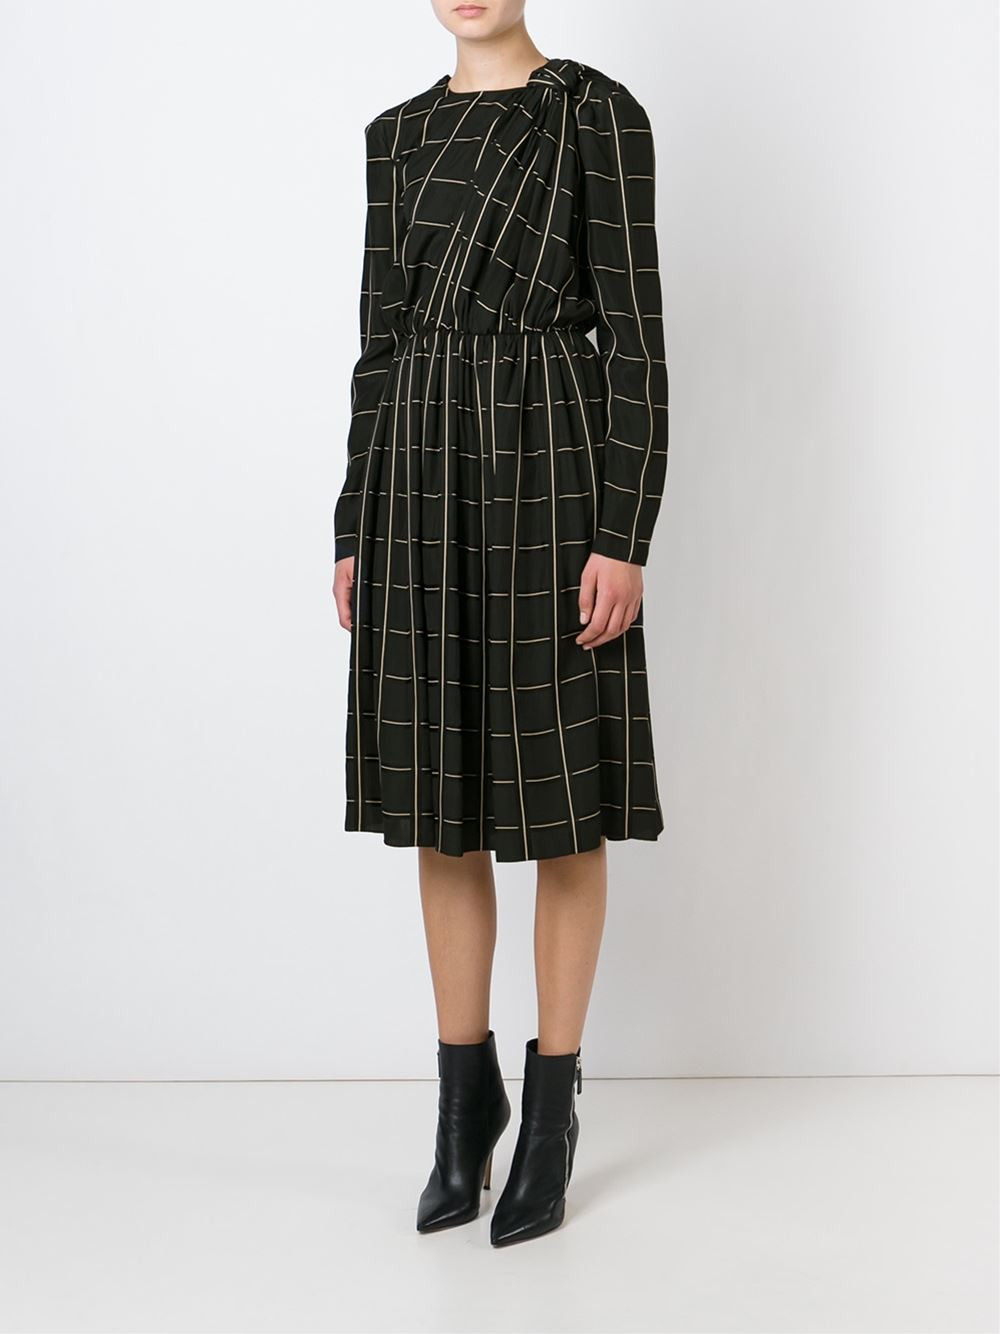 Lanvin Checked Dress now $2,394